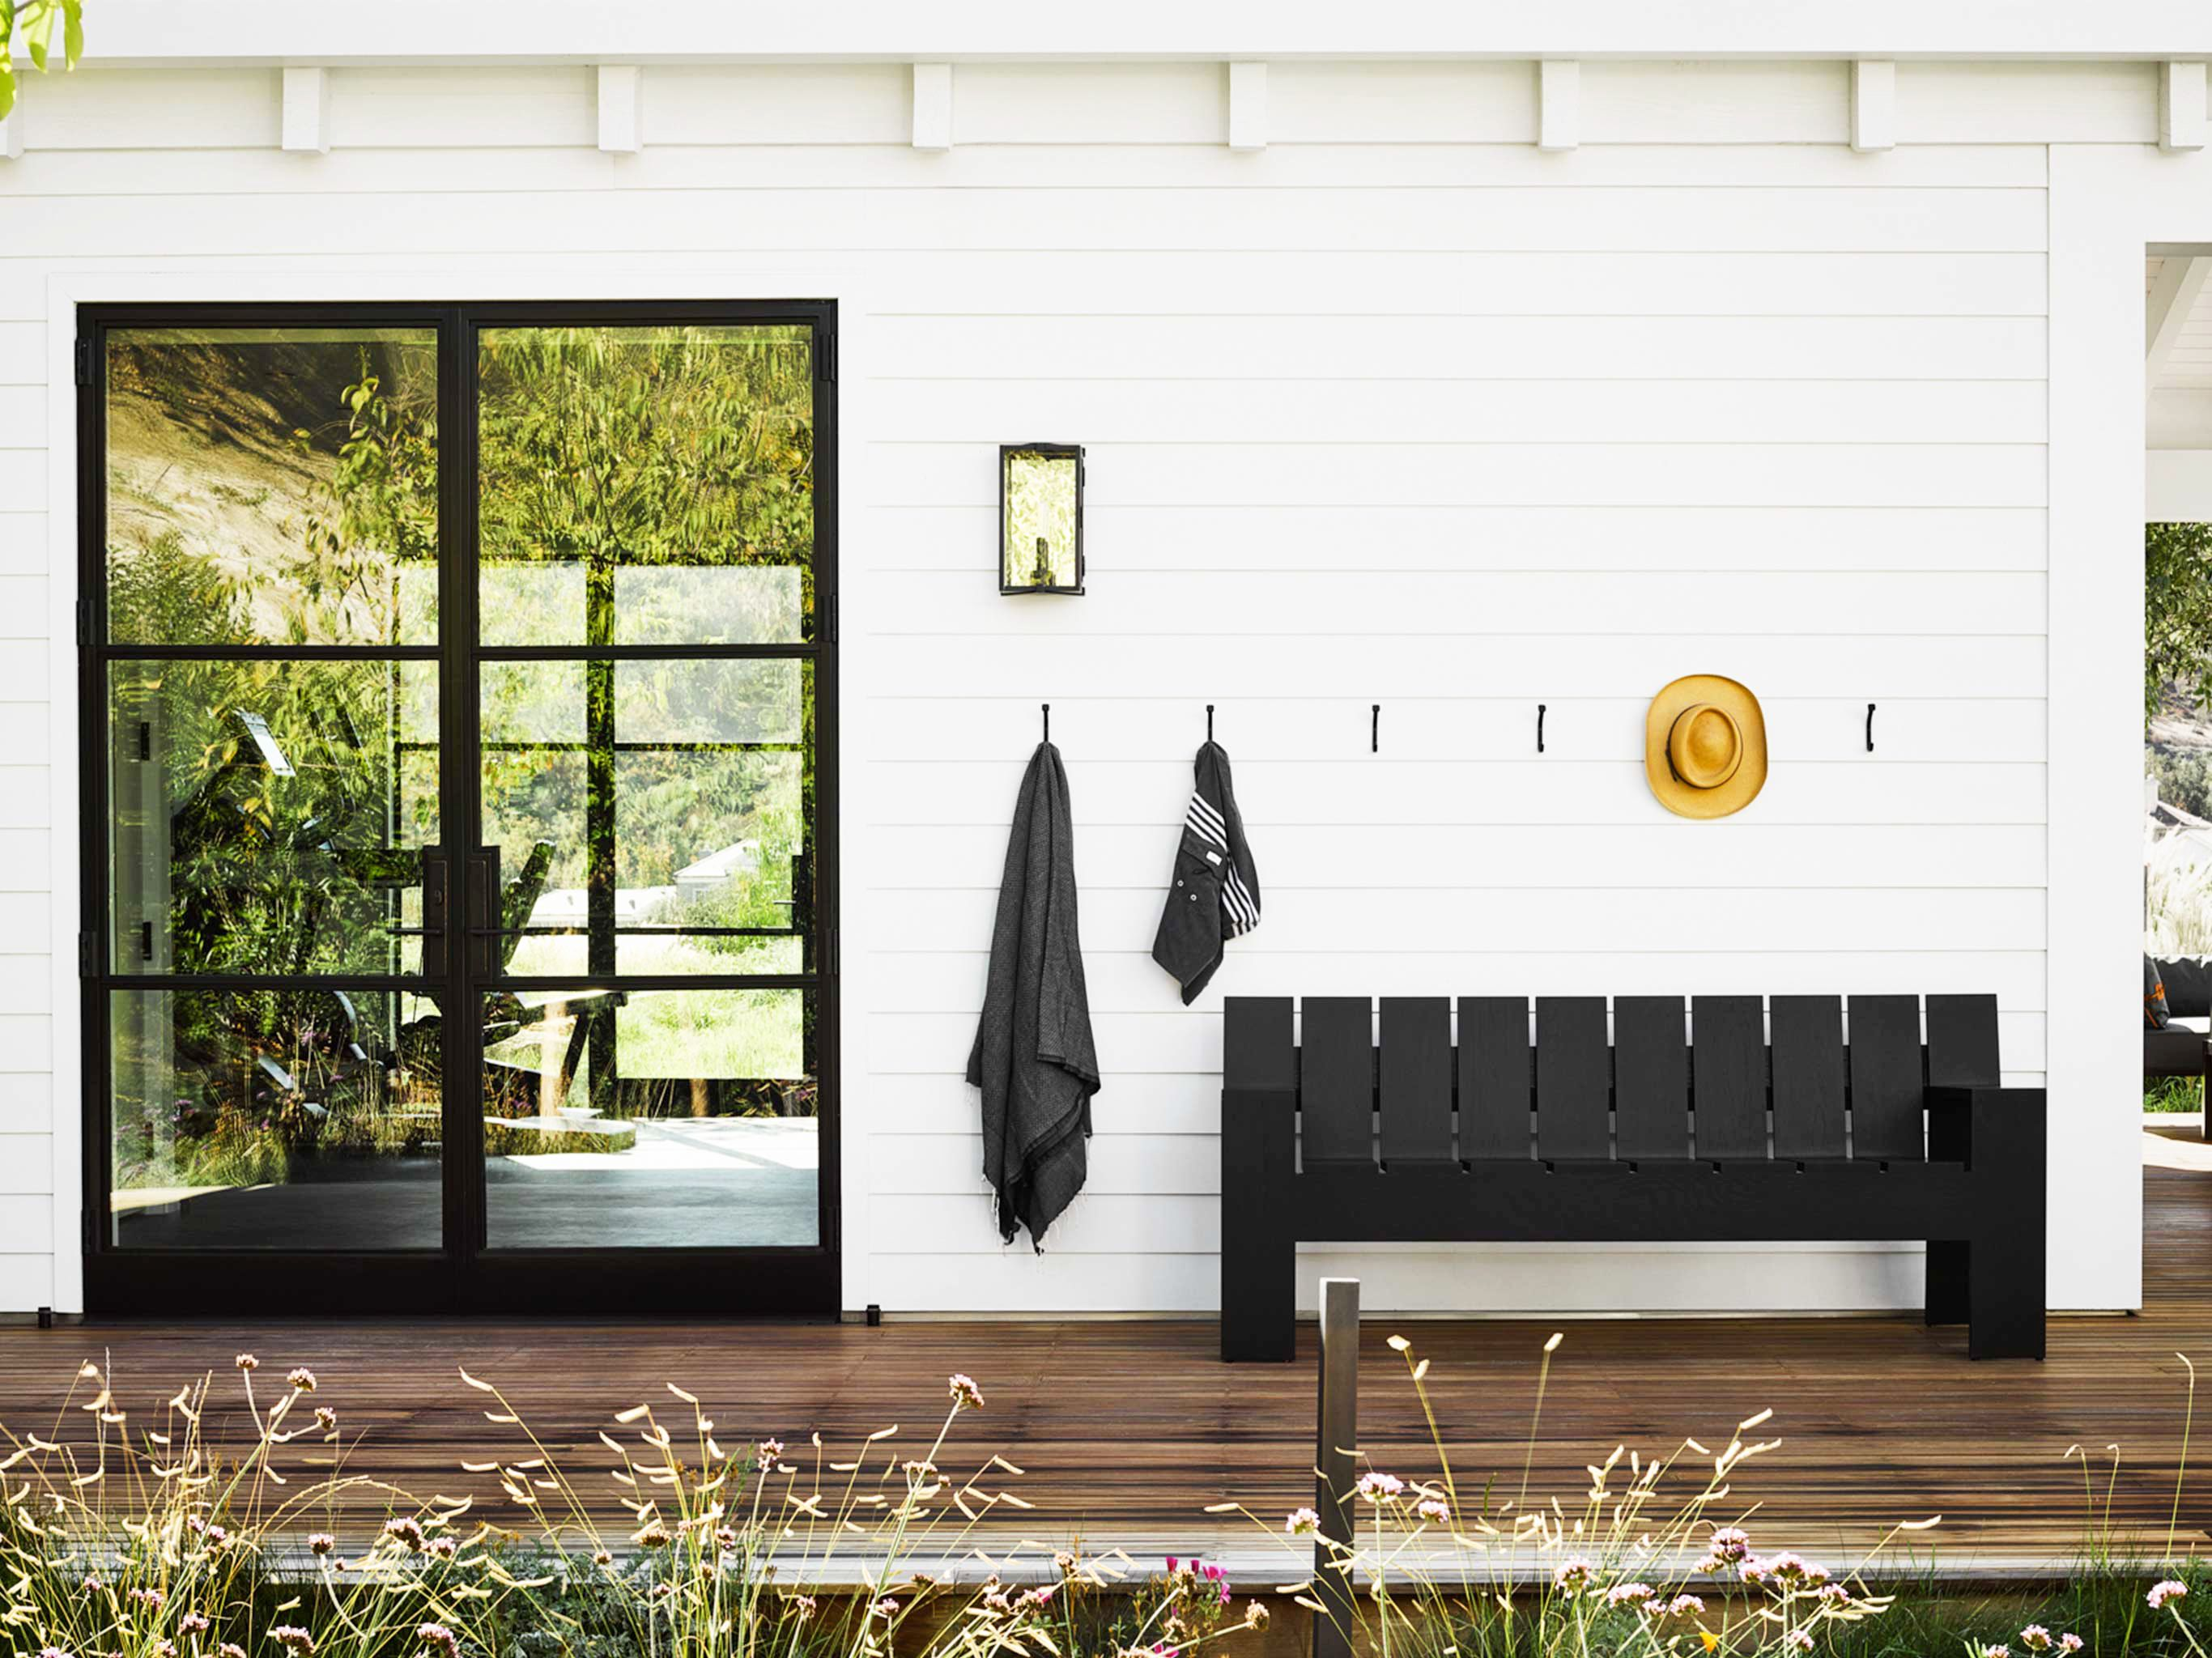 house decorating ideas on a budget.htm 36 charming front porch ideas porch design and decorating tips  36 charming front porch ideas porch